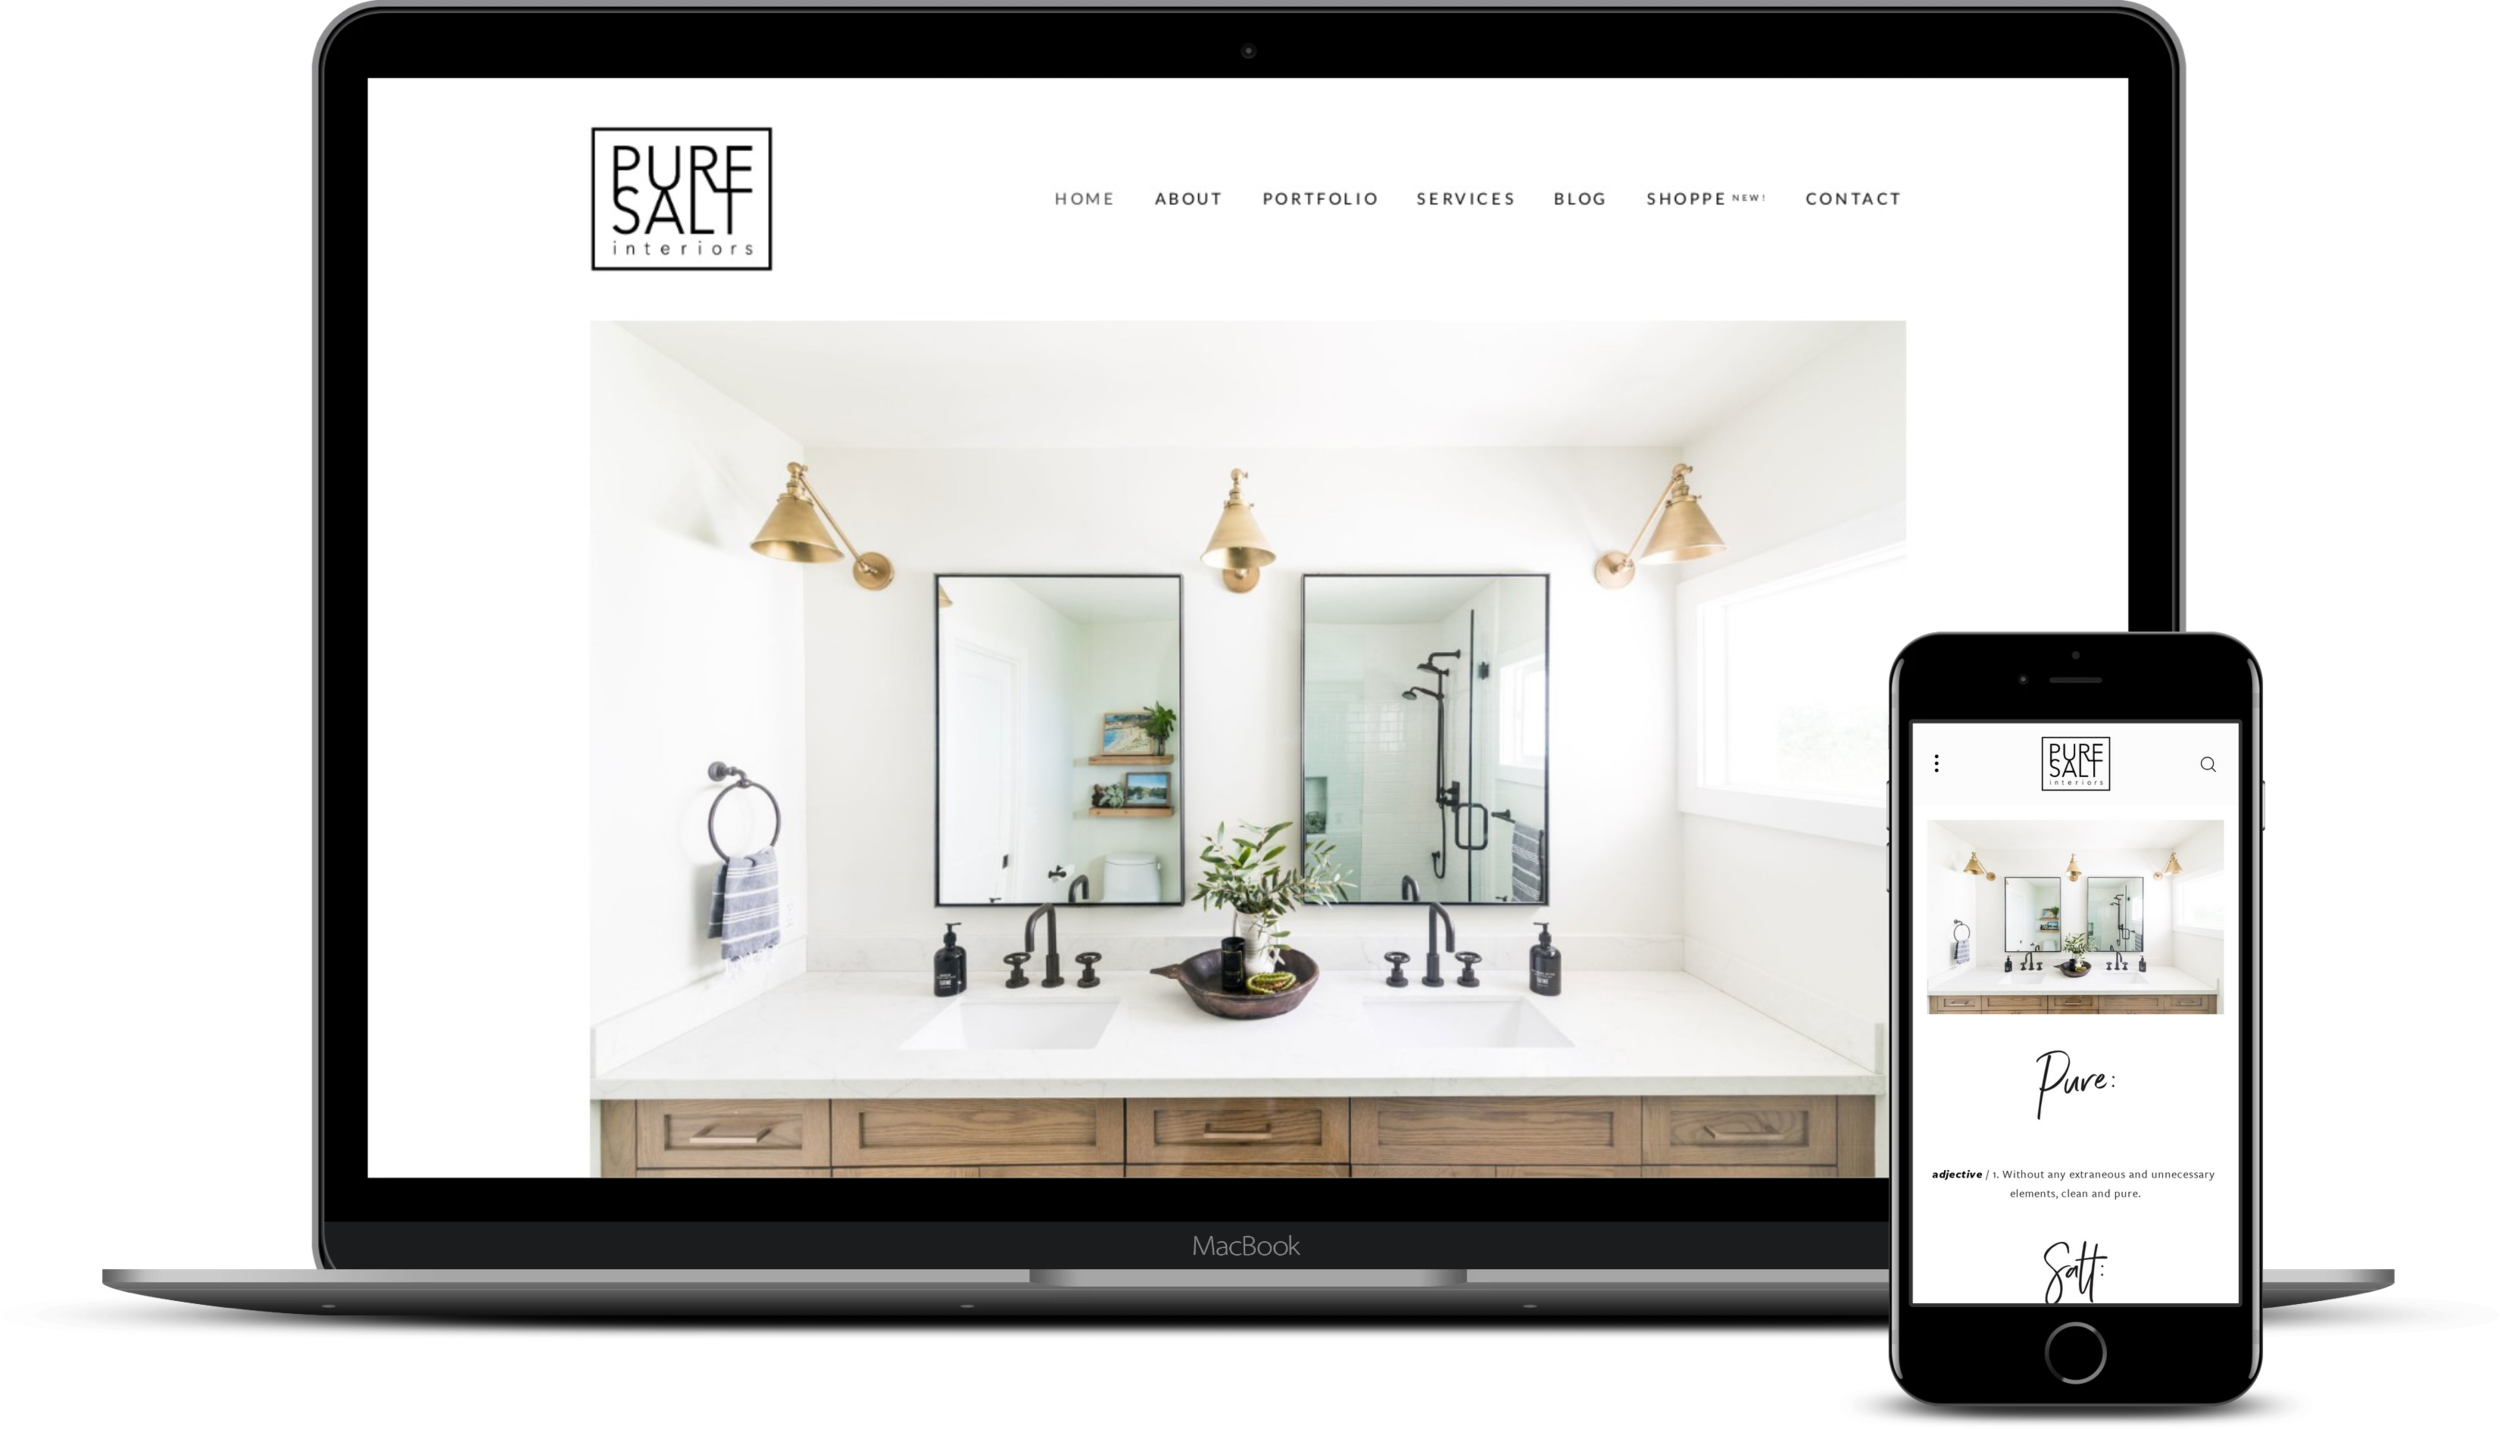 Pure Salt Interiors - Pure Salt Interiors is a full service interior design agency based in Laguna Beach, CA. We worked with their vision to build a website that reflected their brand and bright, clean, coastal design style, with an e-commerce store to match.